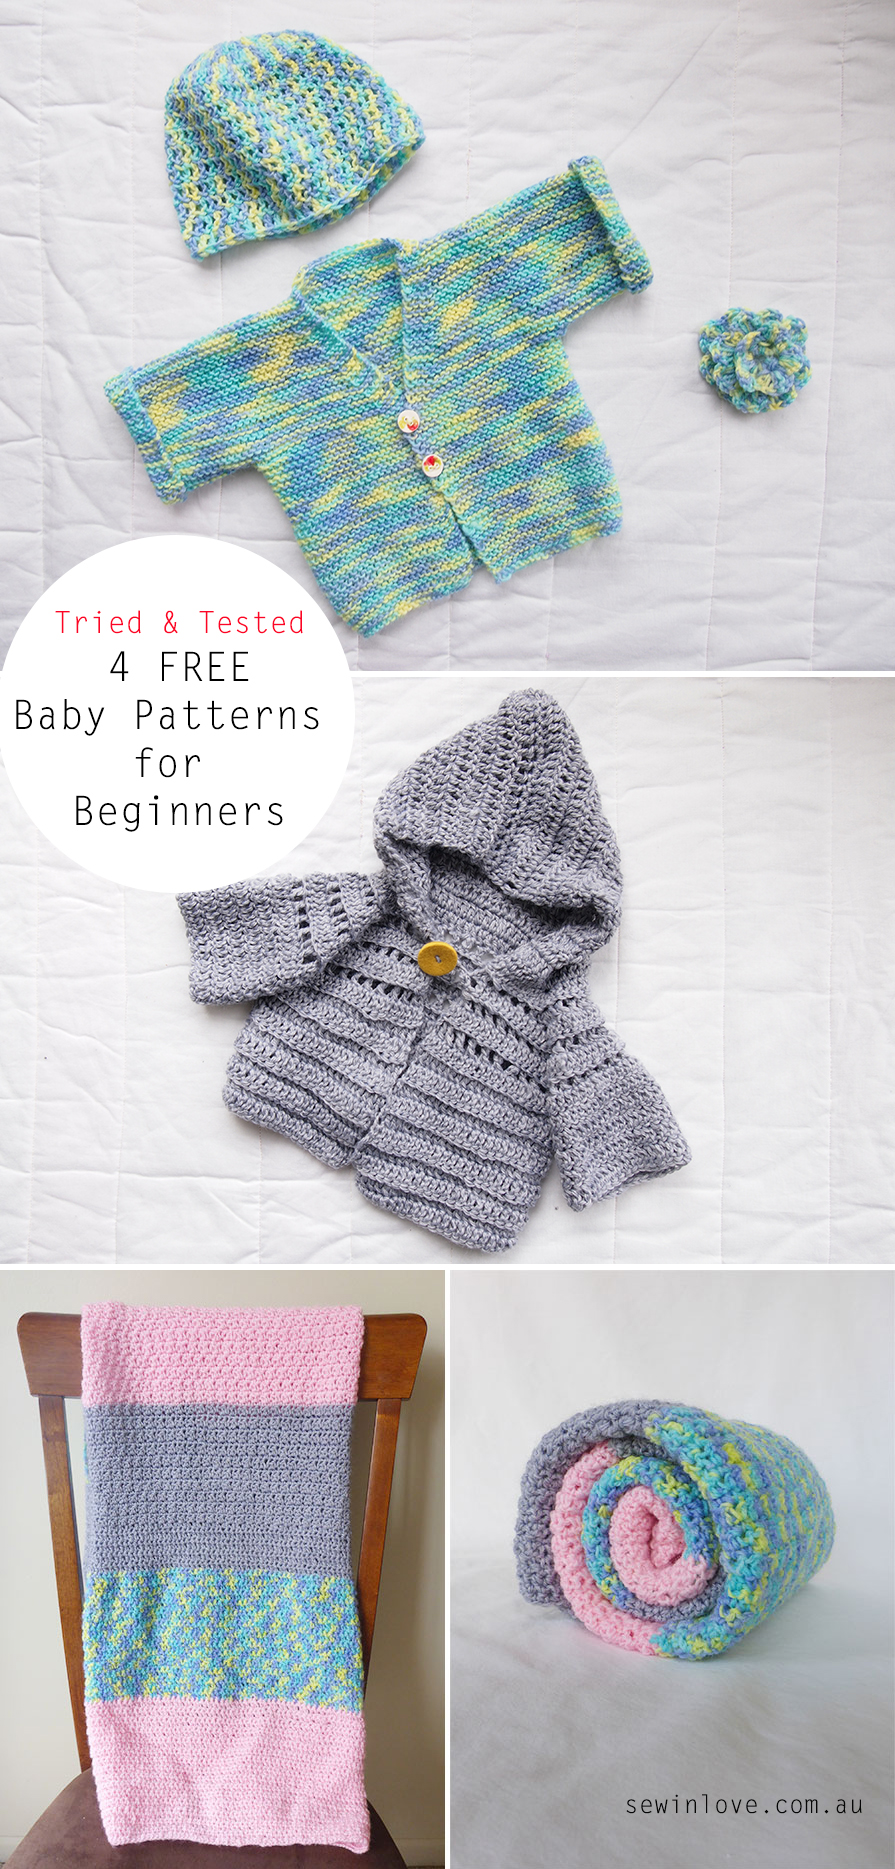 Free Knitting Patterns For Baby Sweaters Beginners : Tried and Tested: Free baby knitting and crochet patterns for beginners - Sew...